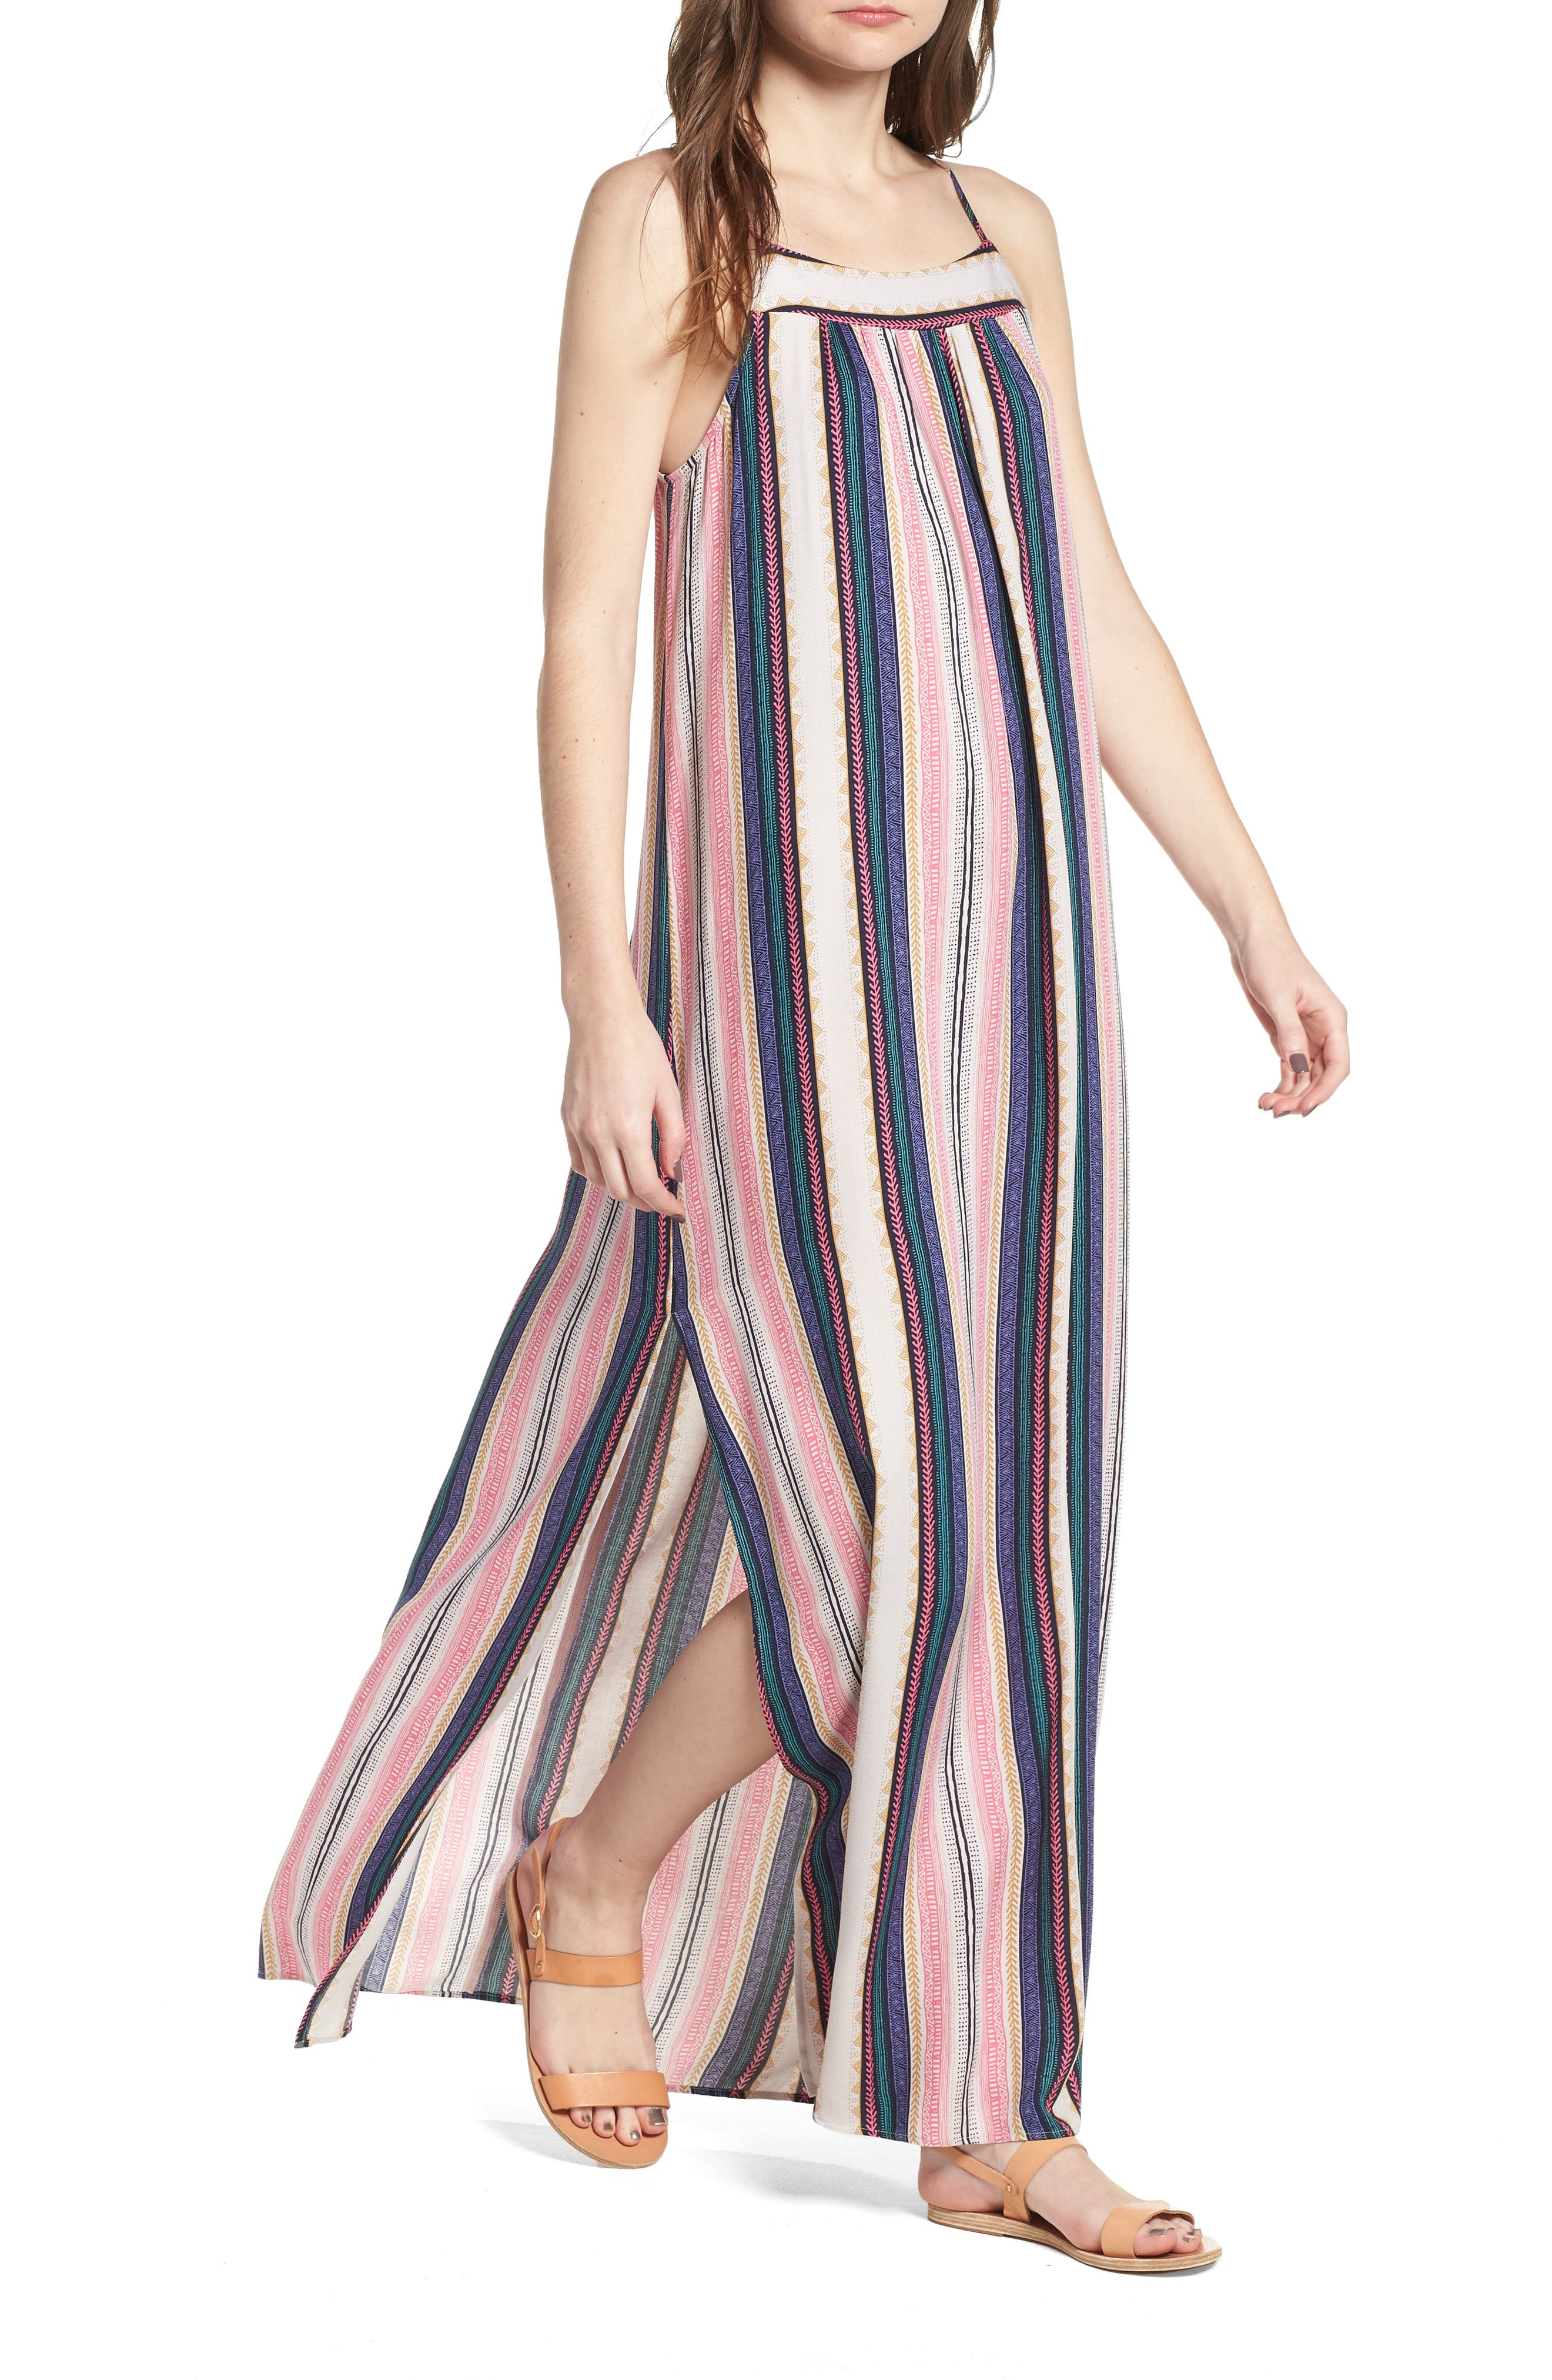 ONE CLOTHING Stripe Maxi Dress, Main, color, 650